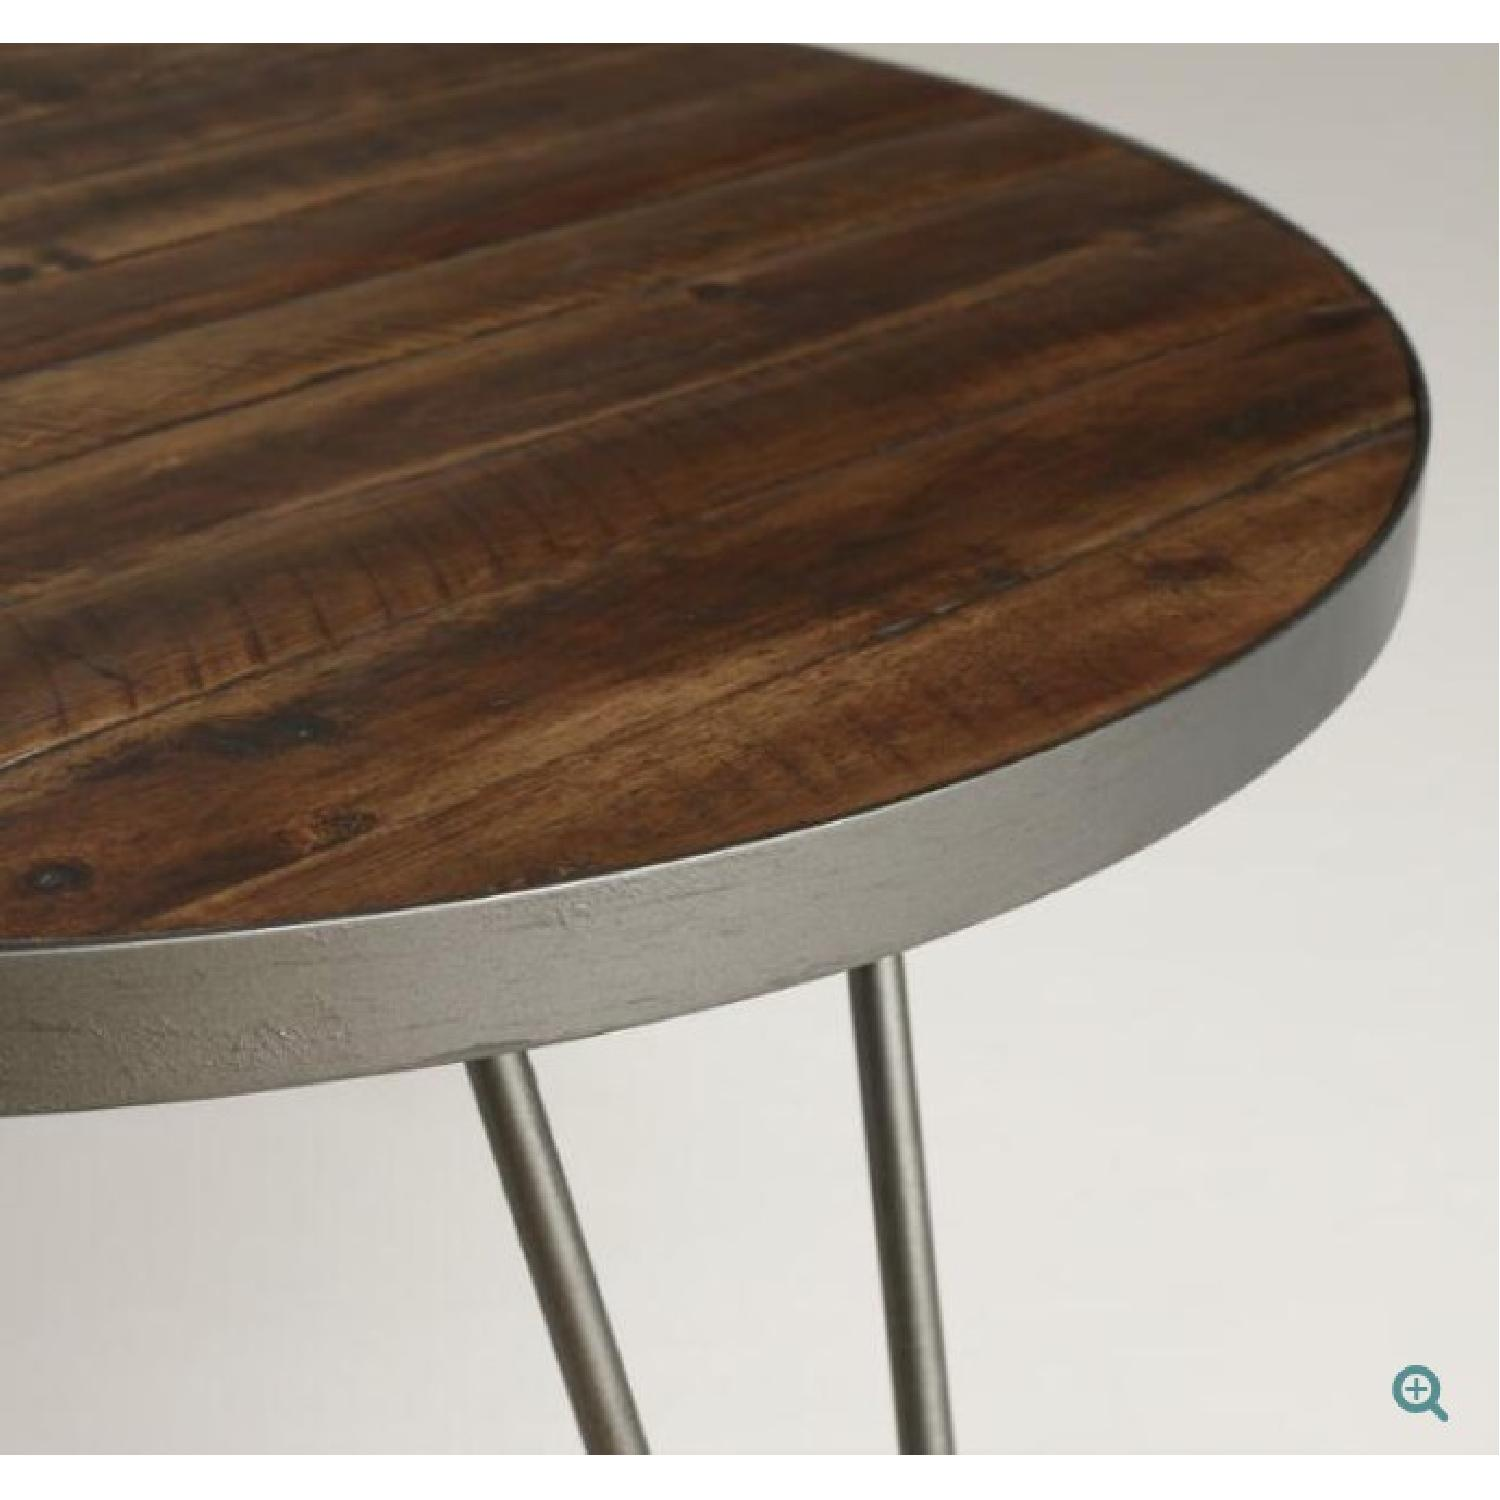 World Market Round Wood Hairpin Coffee Table - image-1